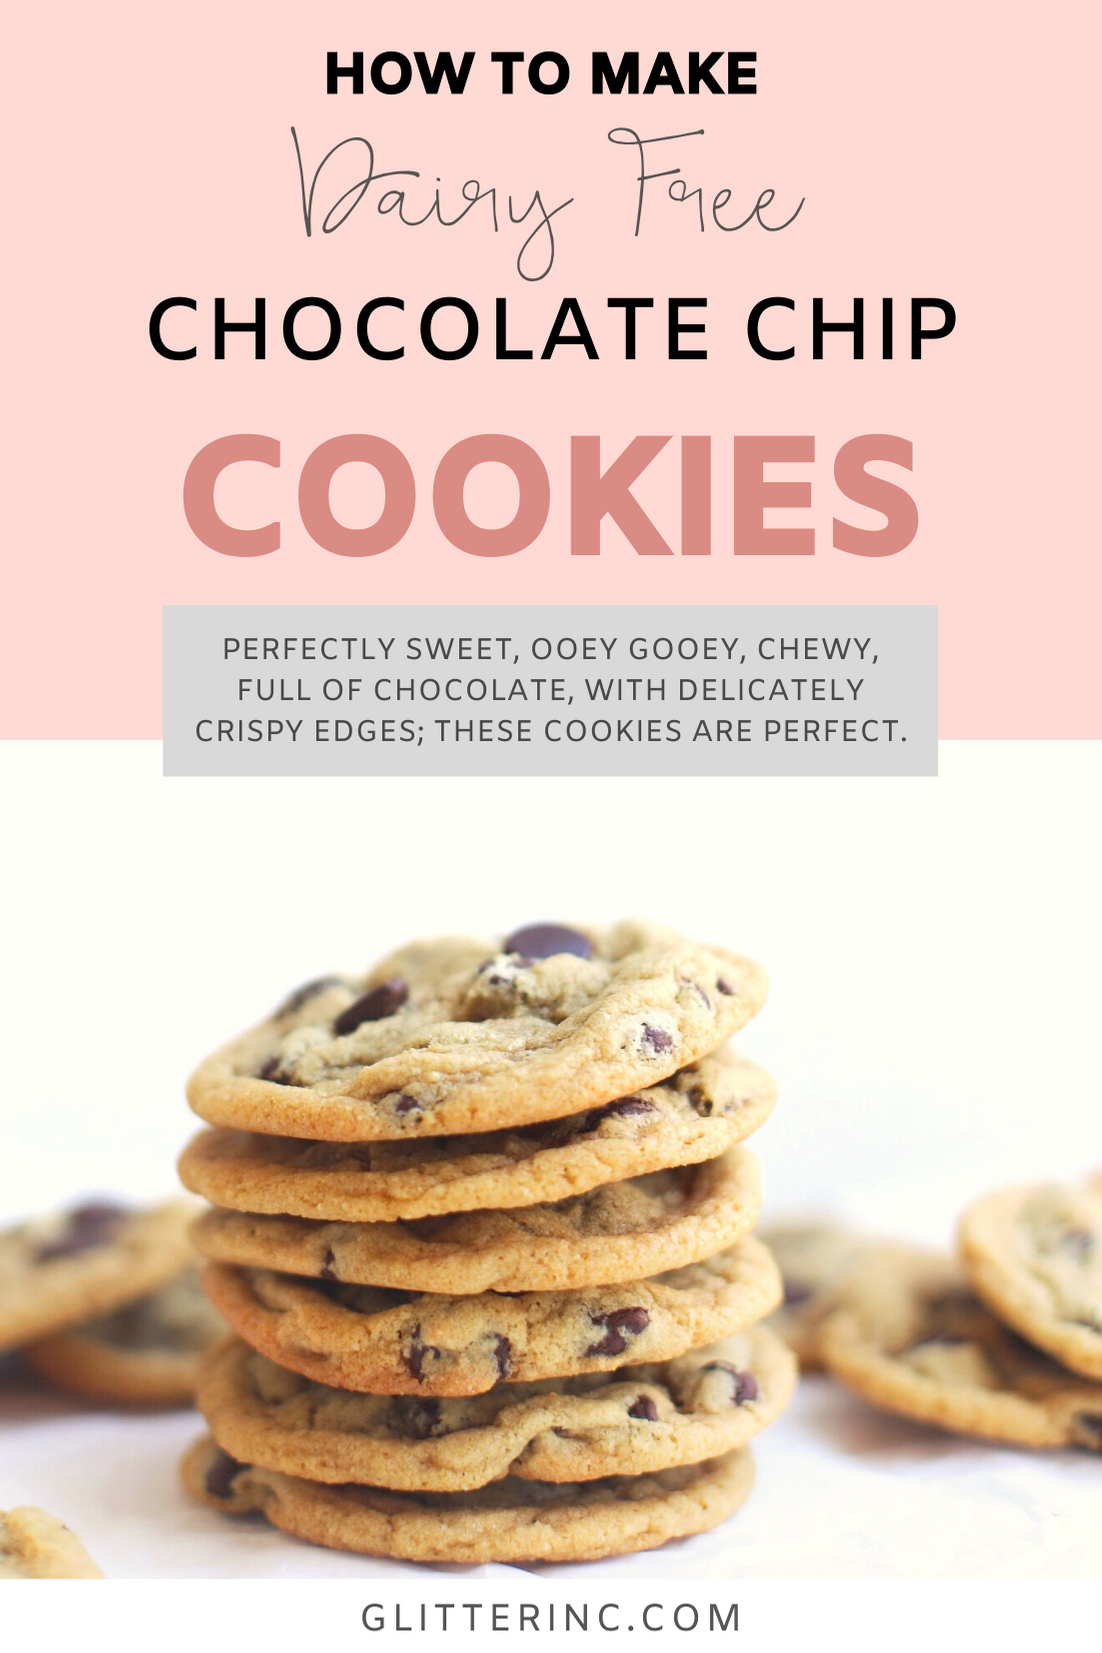 These are the very best dairy free chocolate chip cookies ever. Made in one bowl, the easy recipe results in ooey gooey, oh-so-soft and chewy perfect chocolate chip cookies every time. Plus, we have a few tricks for making these cookies vegan, and/or gluten-free too! | glitterinc.com | @glitterinc